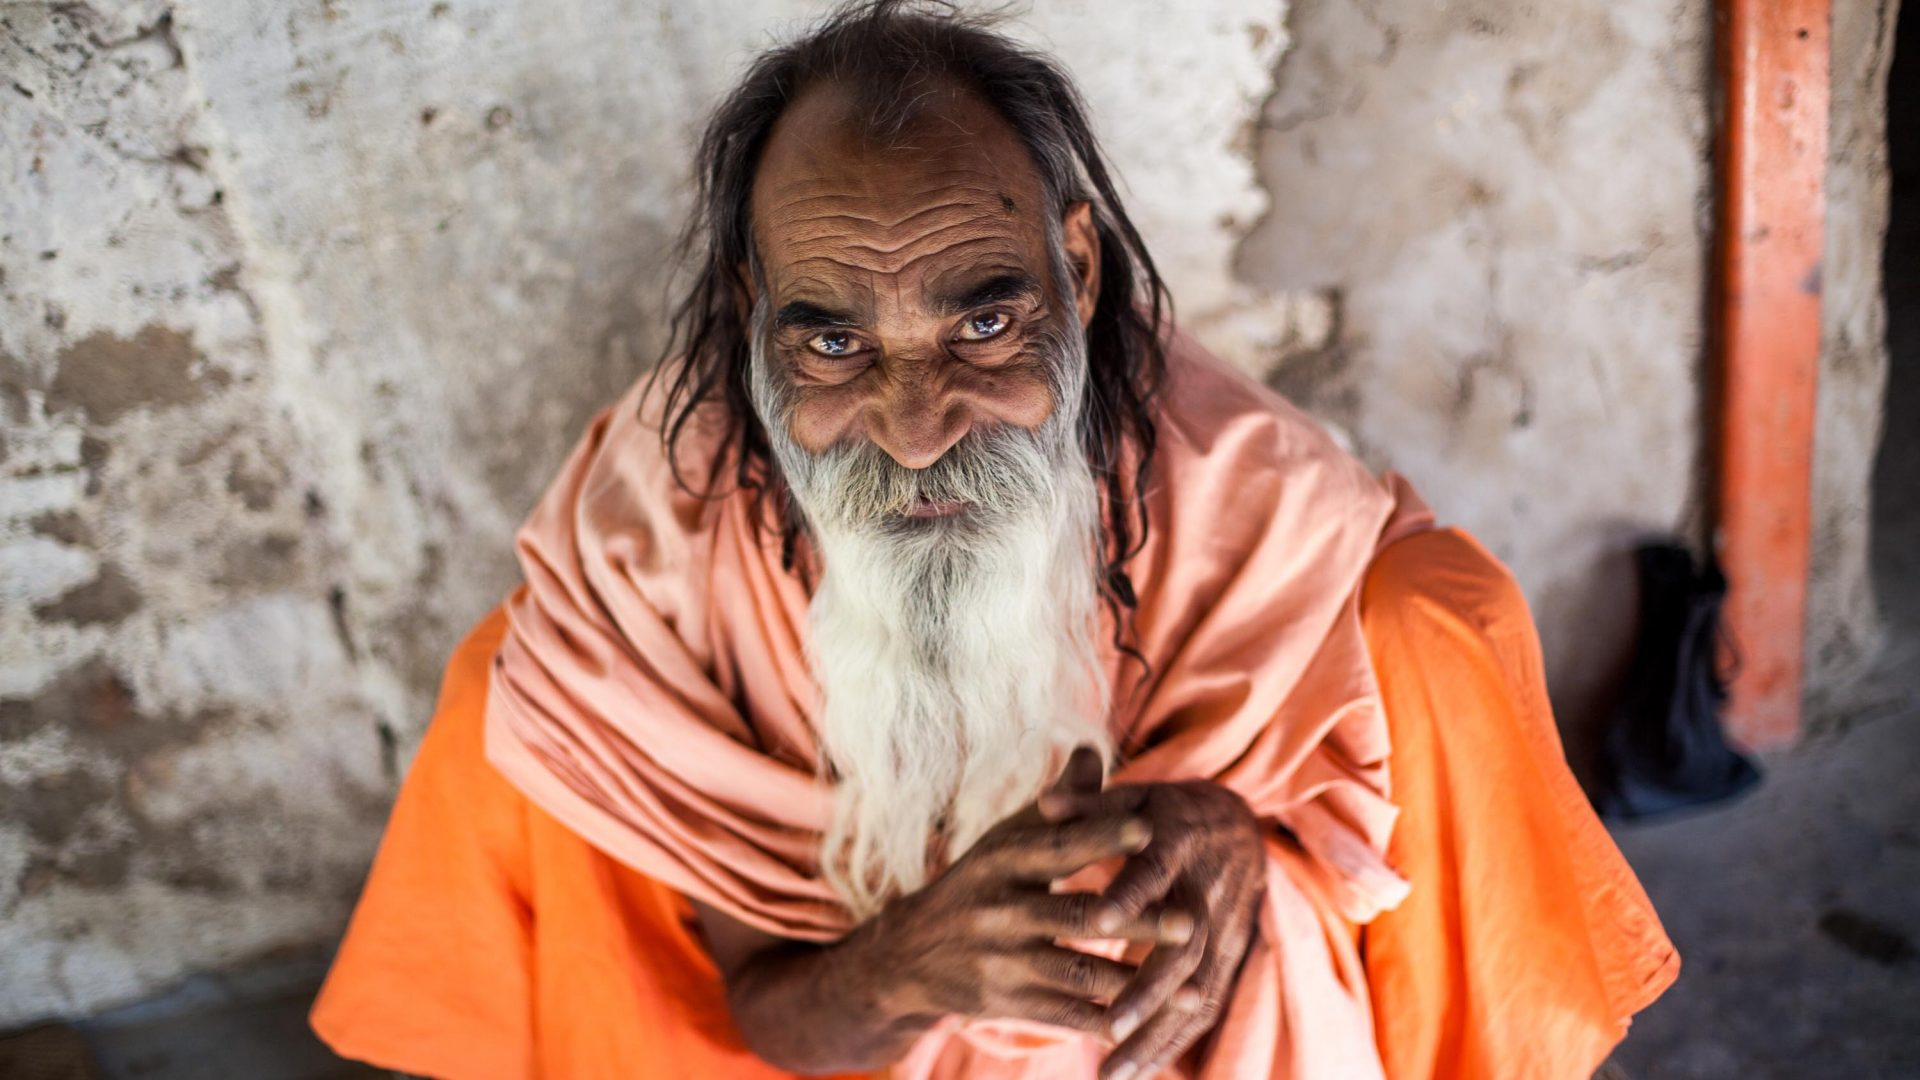 Aloo Baba, a sadhu (holy man) who only eats potatoes (aloo) and lives in the mountains around Pushkar.